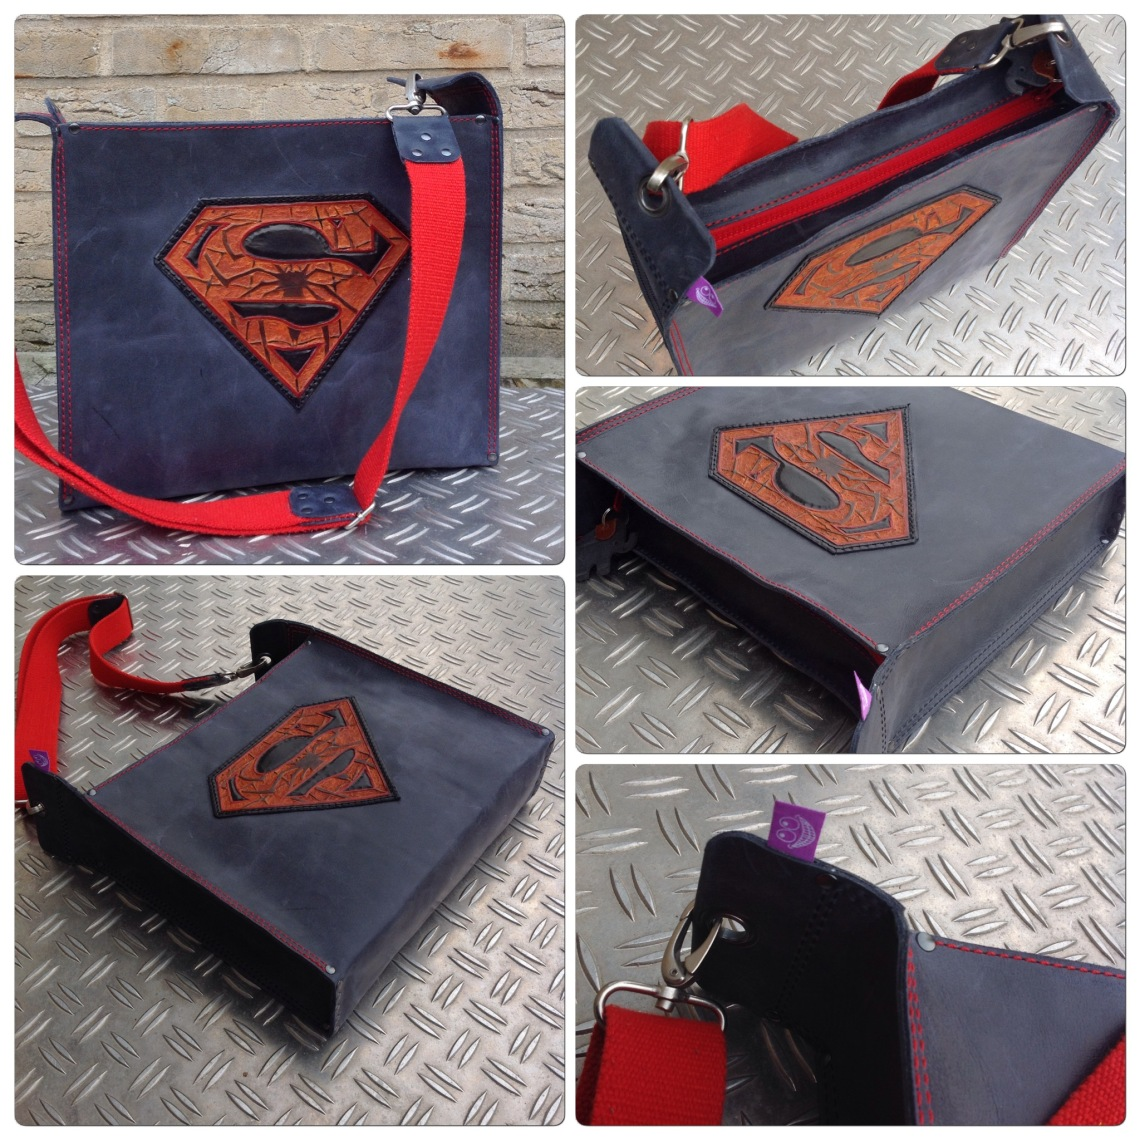 Leather bag with Superman Spiderman logo